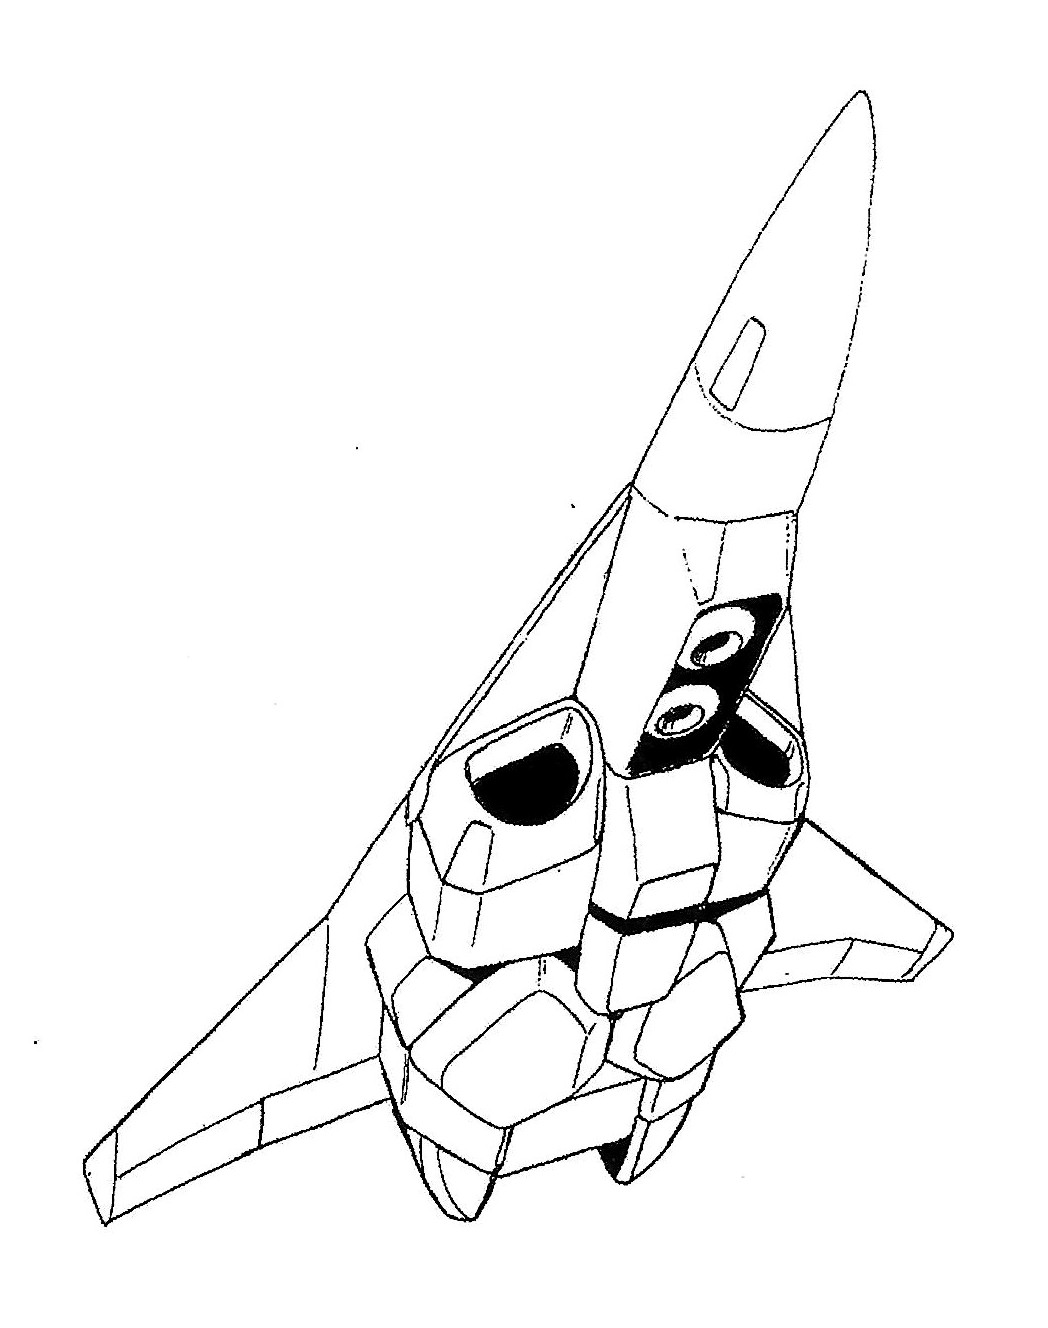 Maxwell Dynamics Vq 6 Vandal Veritech Unmanned Fighter